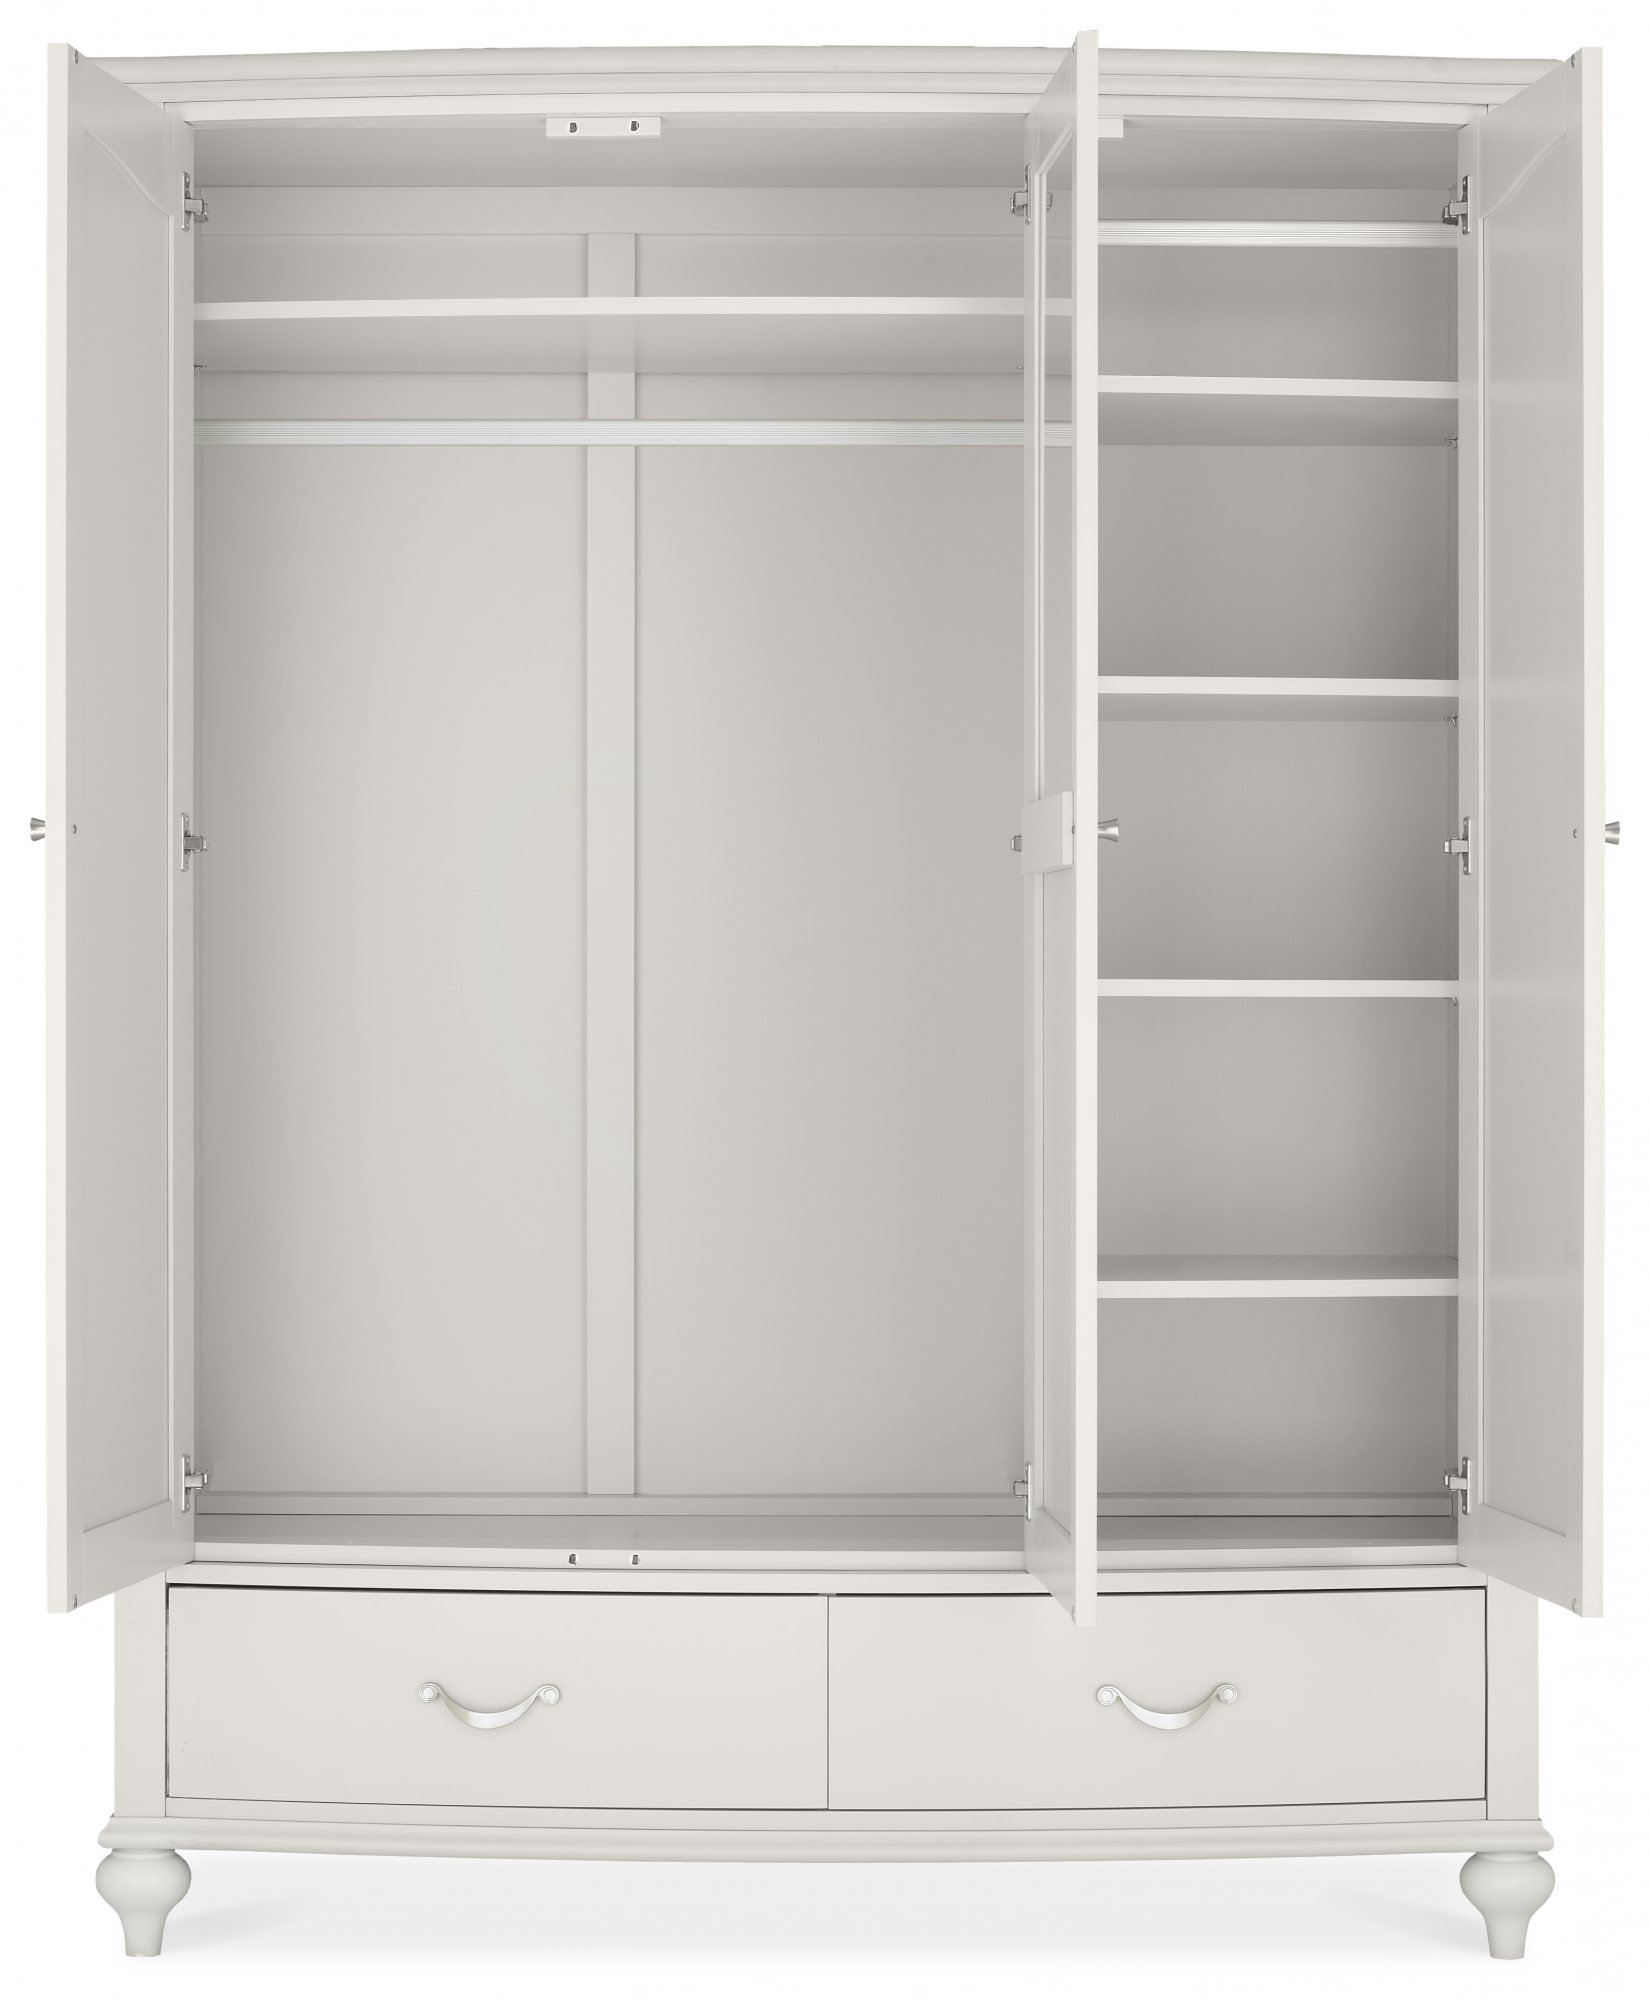 MONICA GREY TRIPLE WARDROBE - STORAGE DETAIL